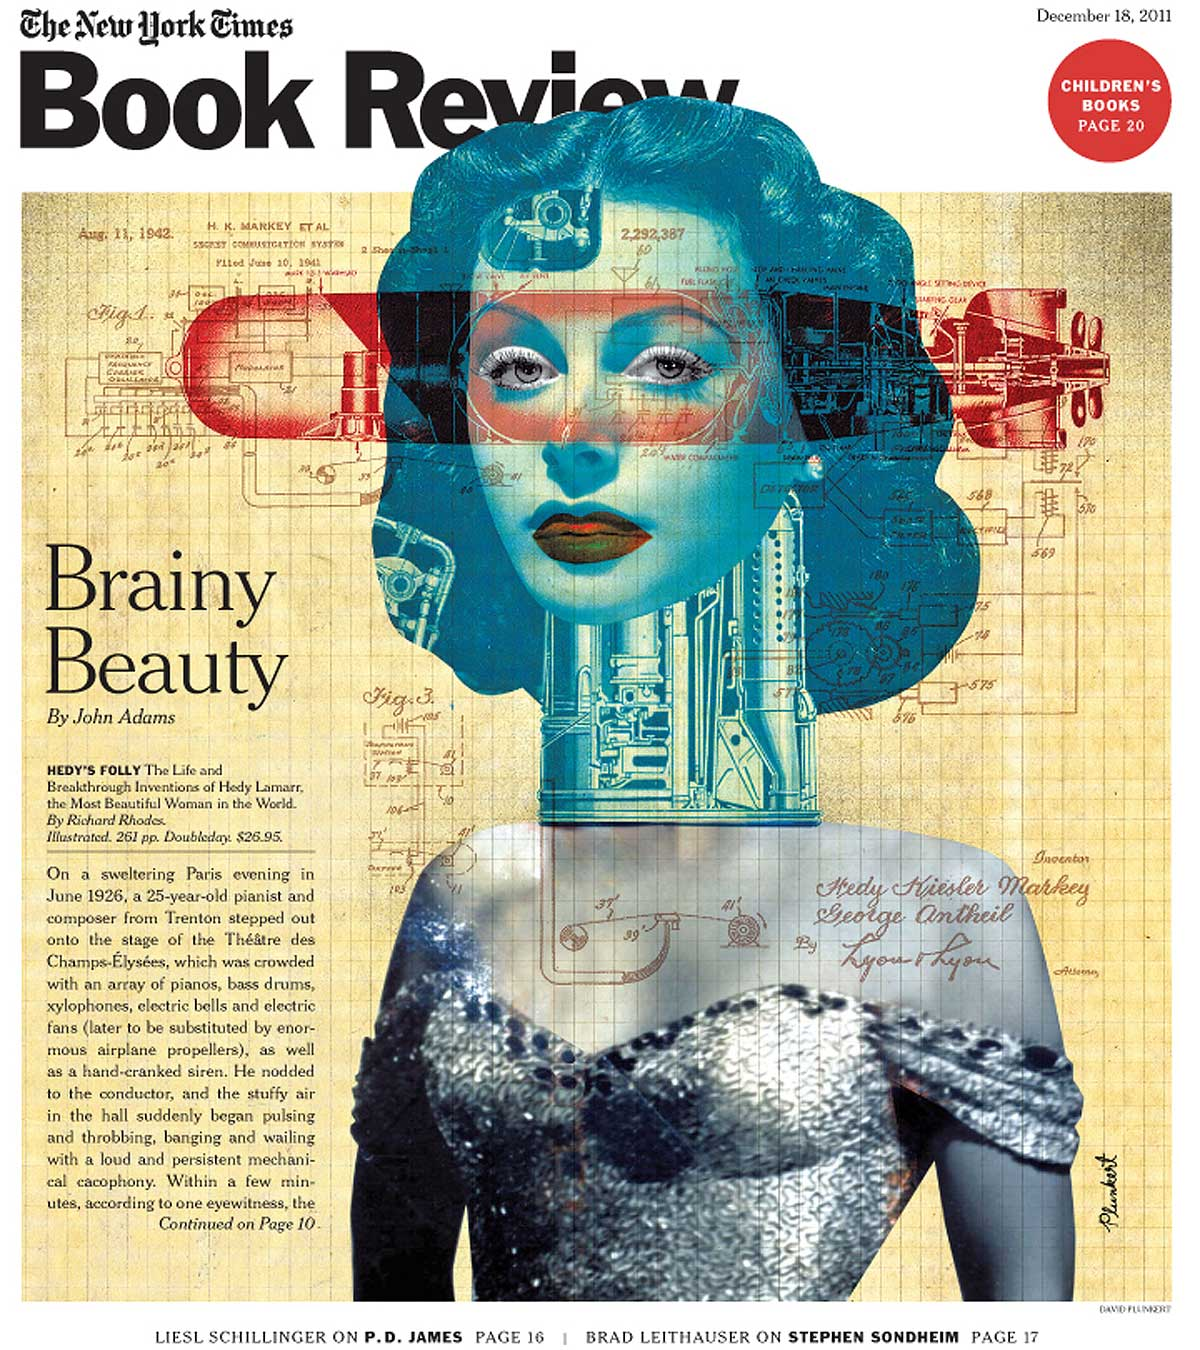 David Plunkert / Brainy Beauty / New York Times Book Review